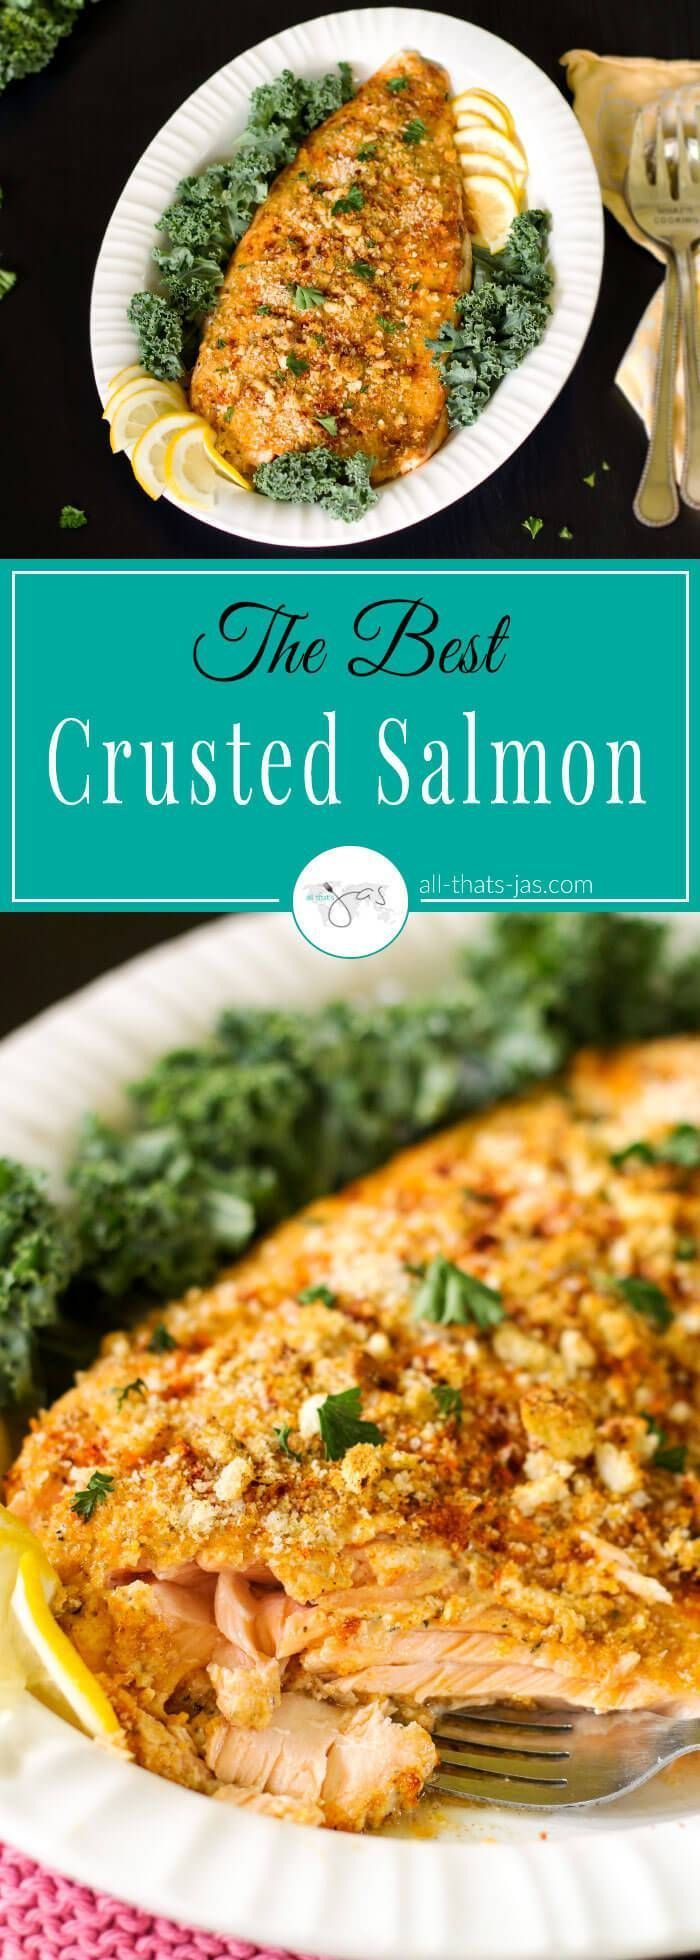 The best crusted Atlantic salmon recipe with spicy, smoky crust using mayo, croutons, parmesan, and herbs is easy to make and perfect for holidays, company or your weekday dinner.